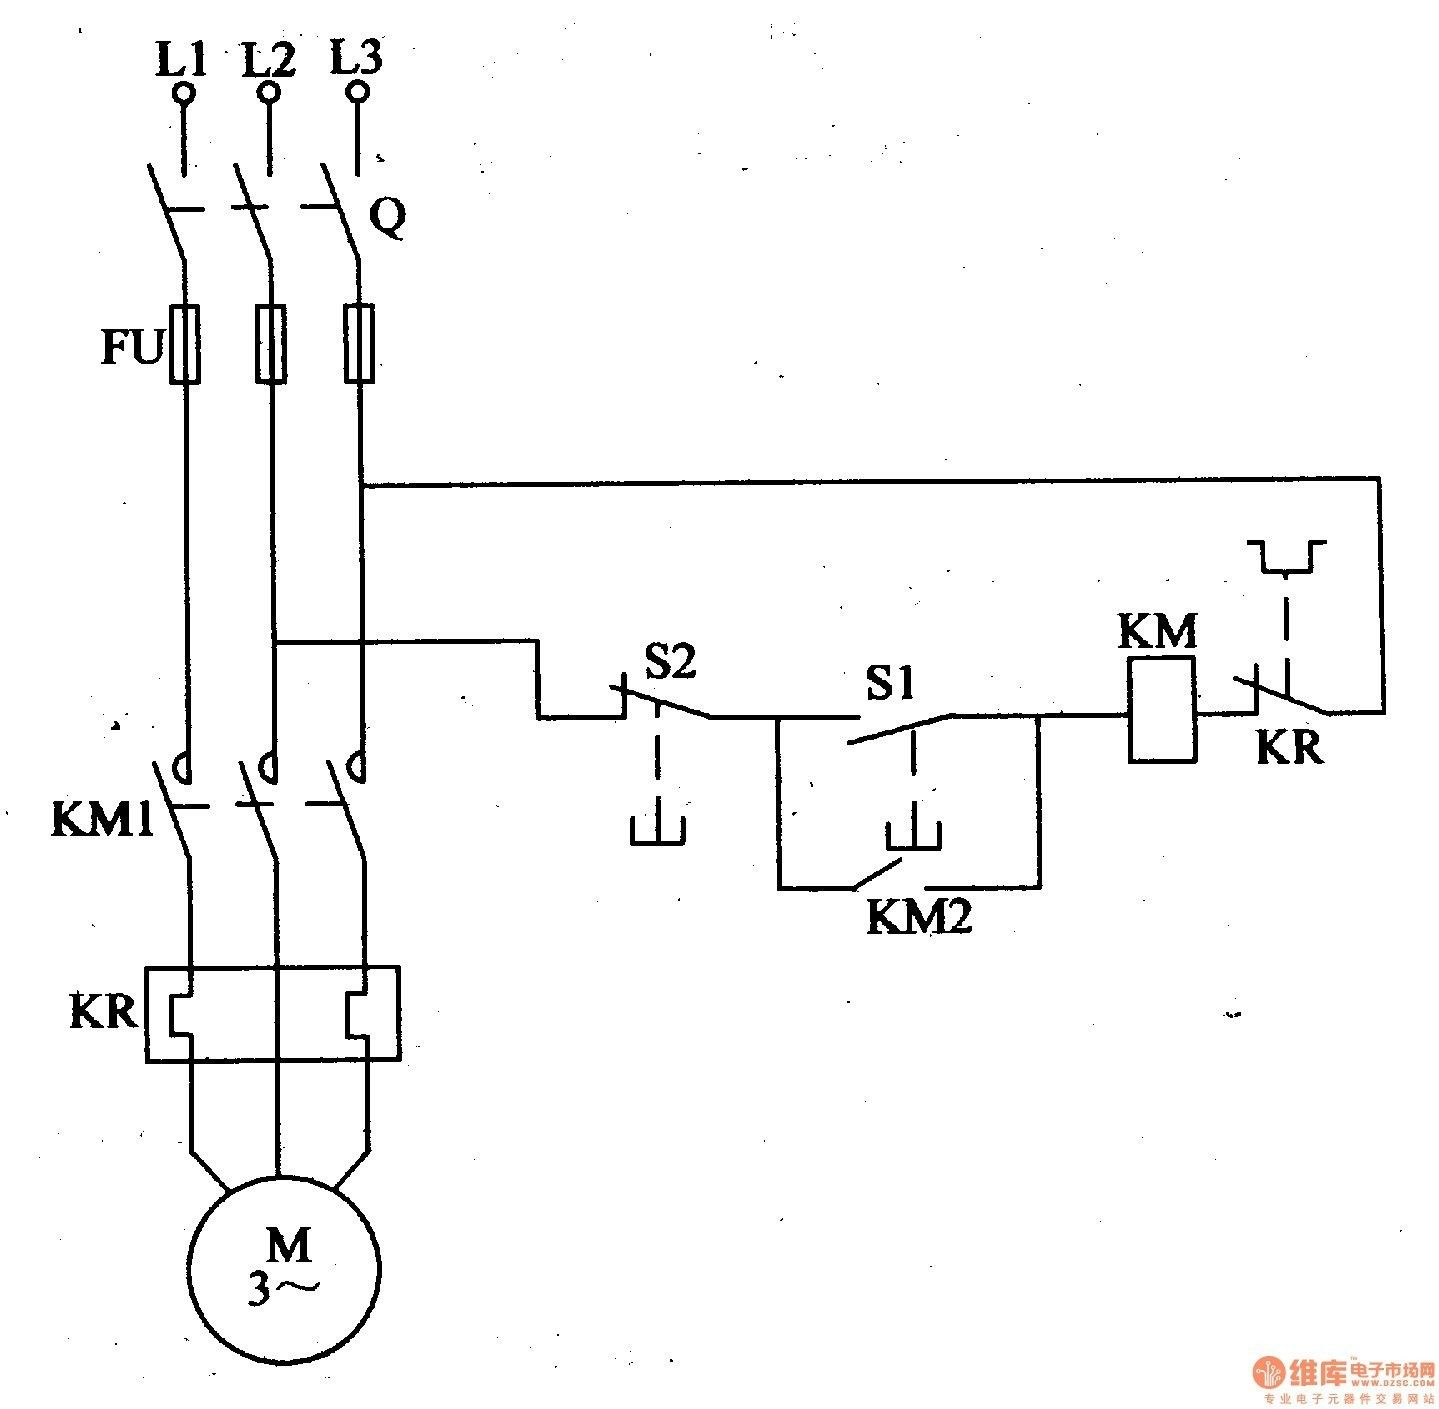 New Wiring Diagram Of A Direct Online Starter with